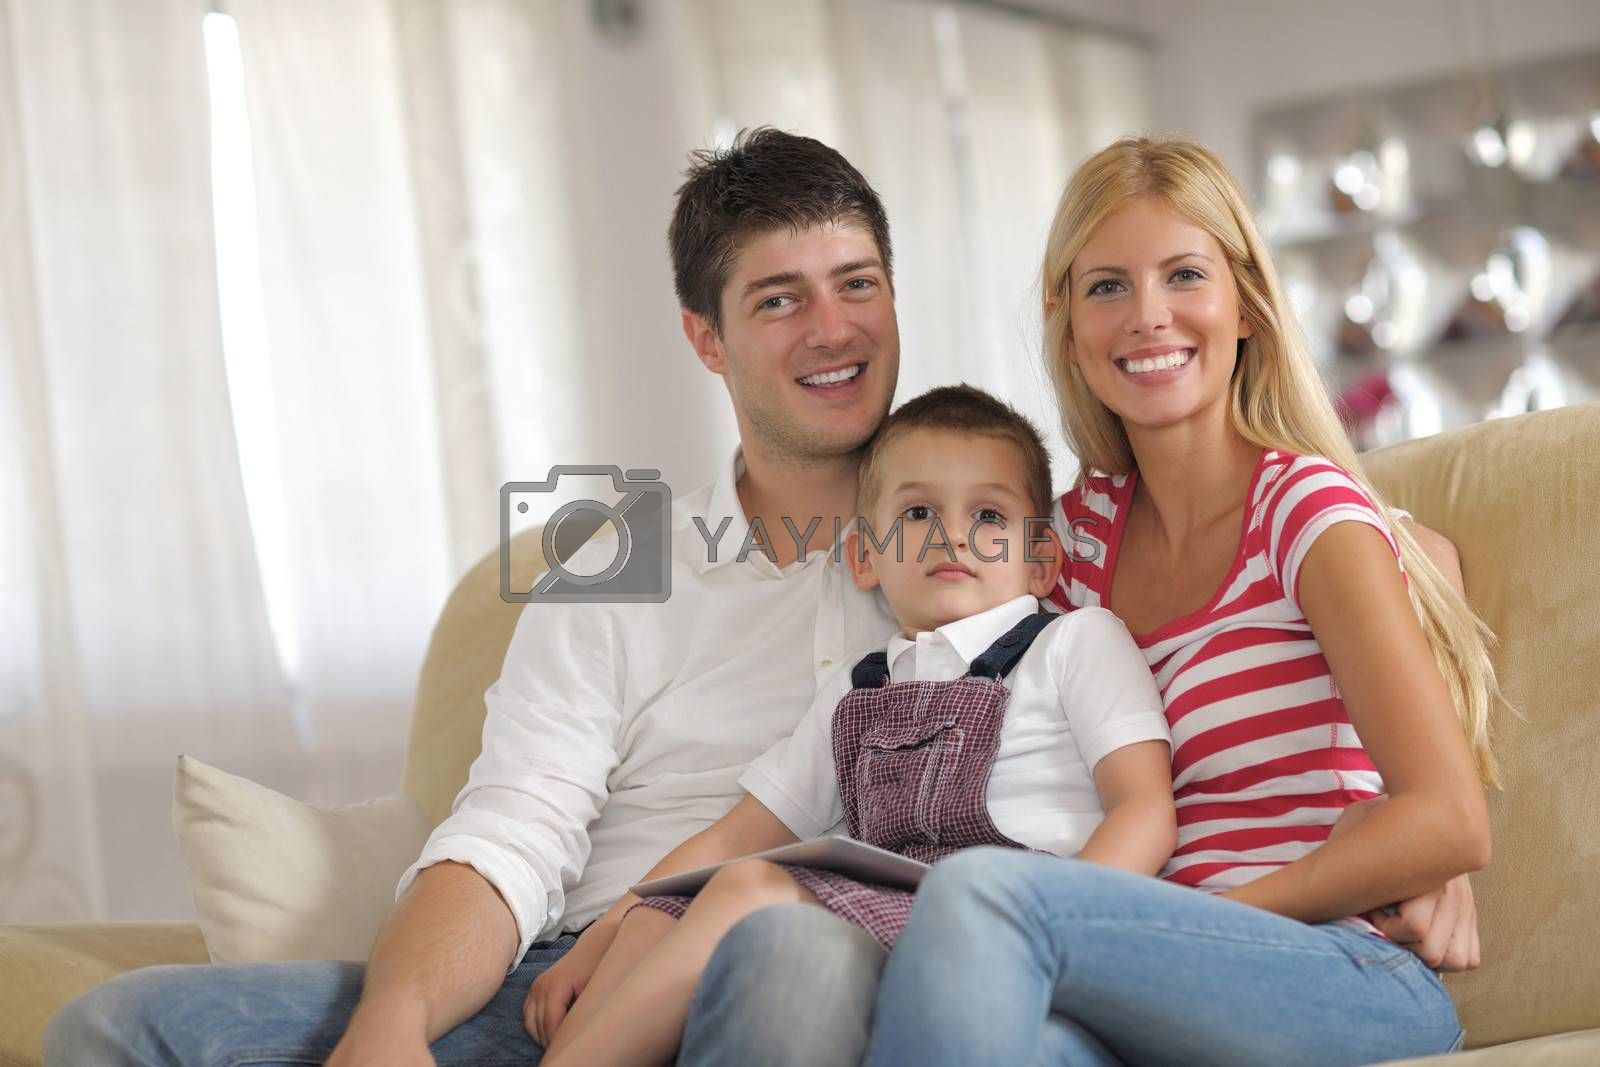 Royalty free image of family at home using tablet computer by .shock